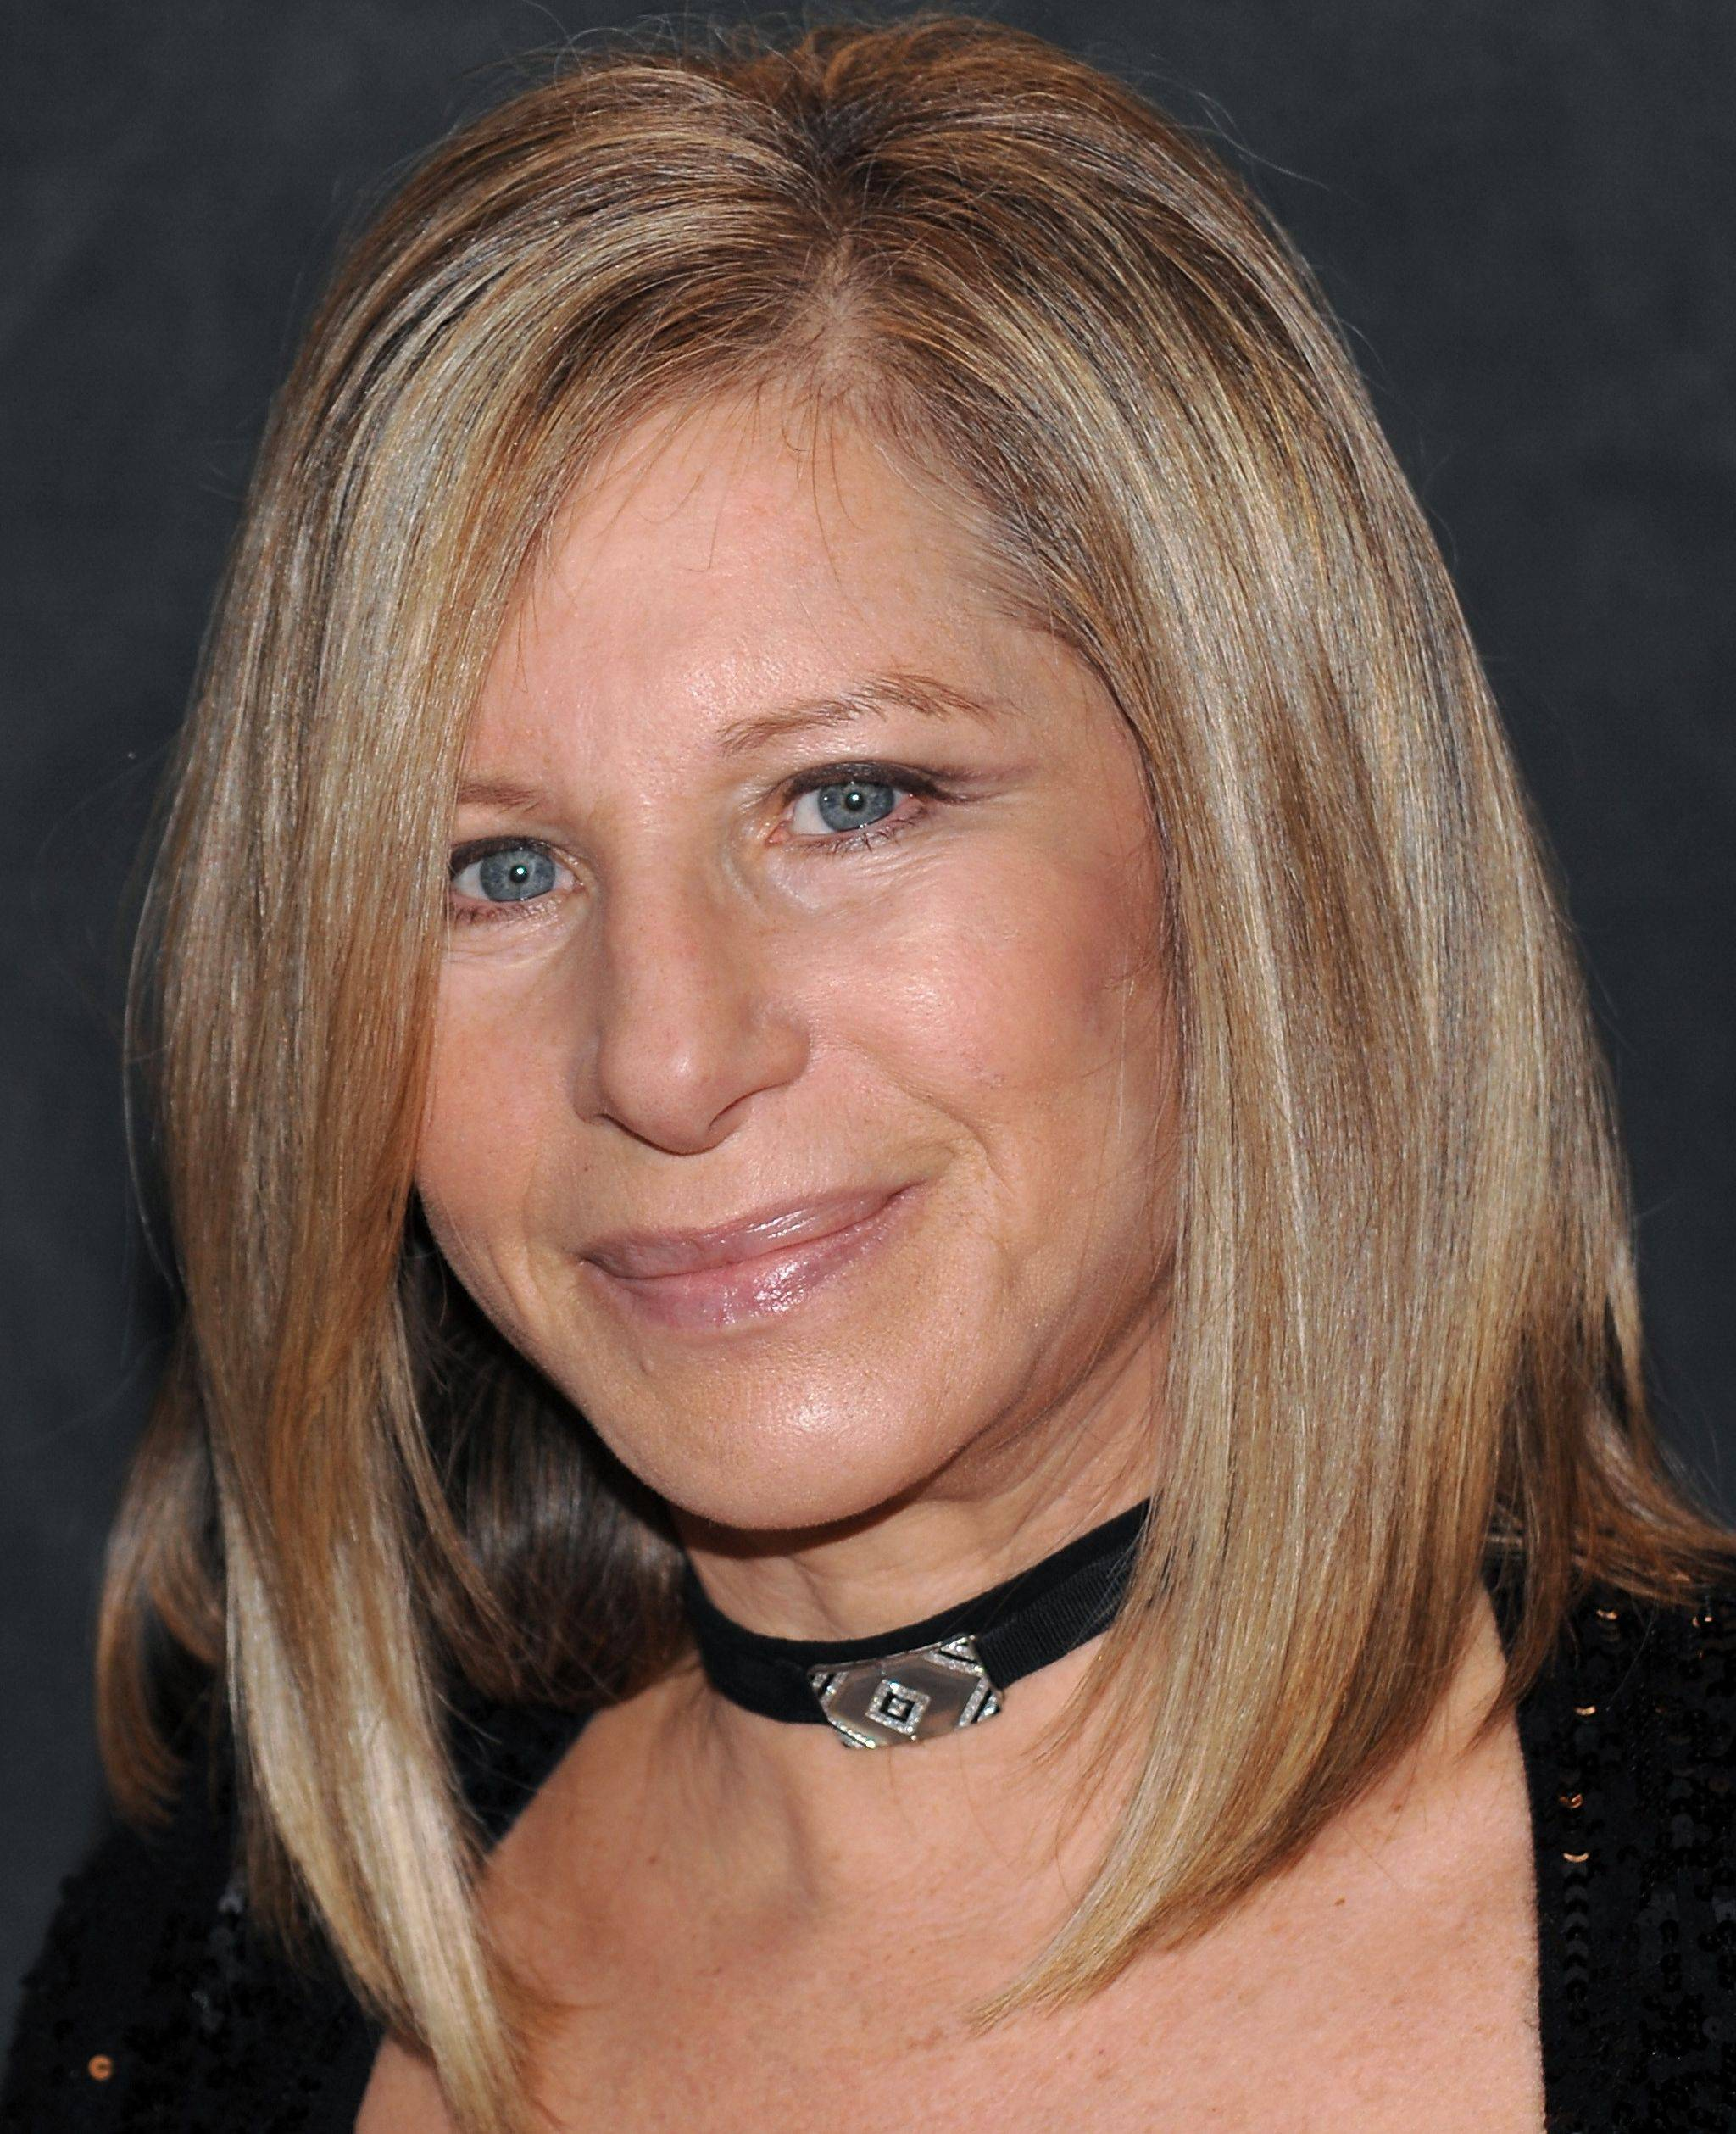 Barbra Streisand performed Friday night at the United Center in Chicago. The concert included a tribute to late composer Marvin Hamlisch and a duet with her son, Jason Gould.